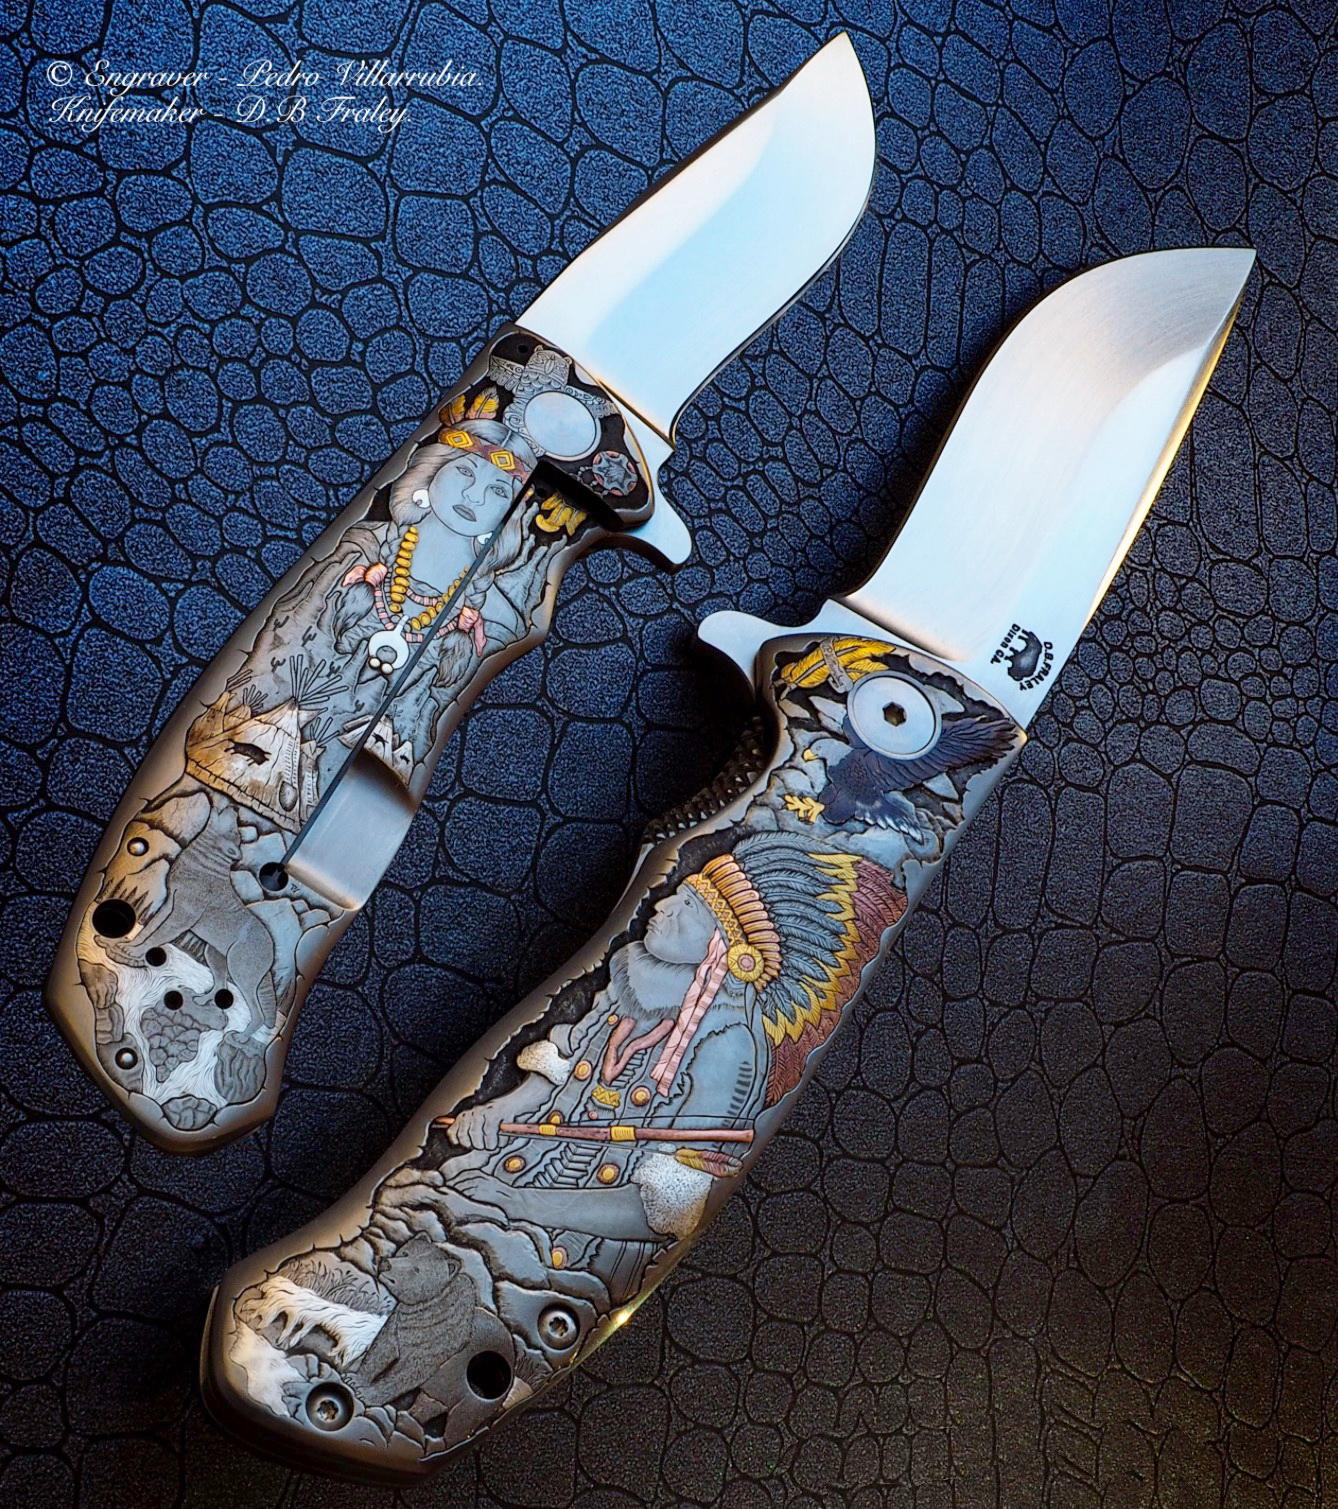 D.B. Fraley Custom Torrent Flipper - Masterfully engraved by Pedro Villarruibia